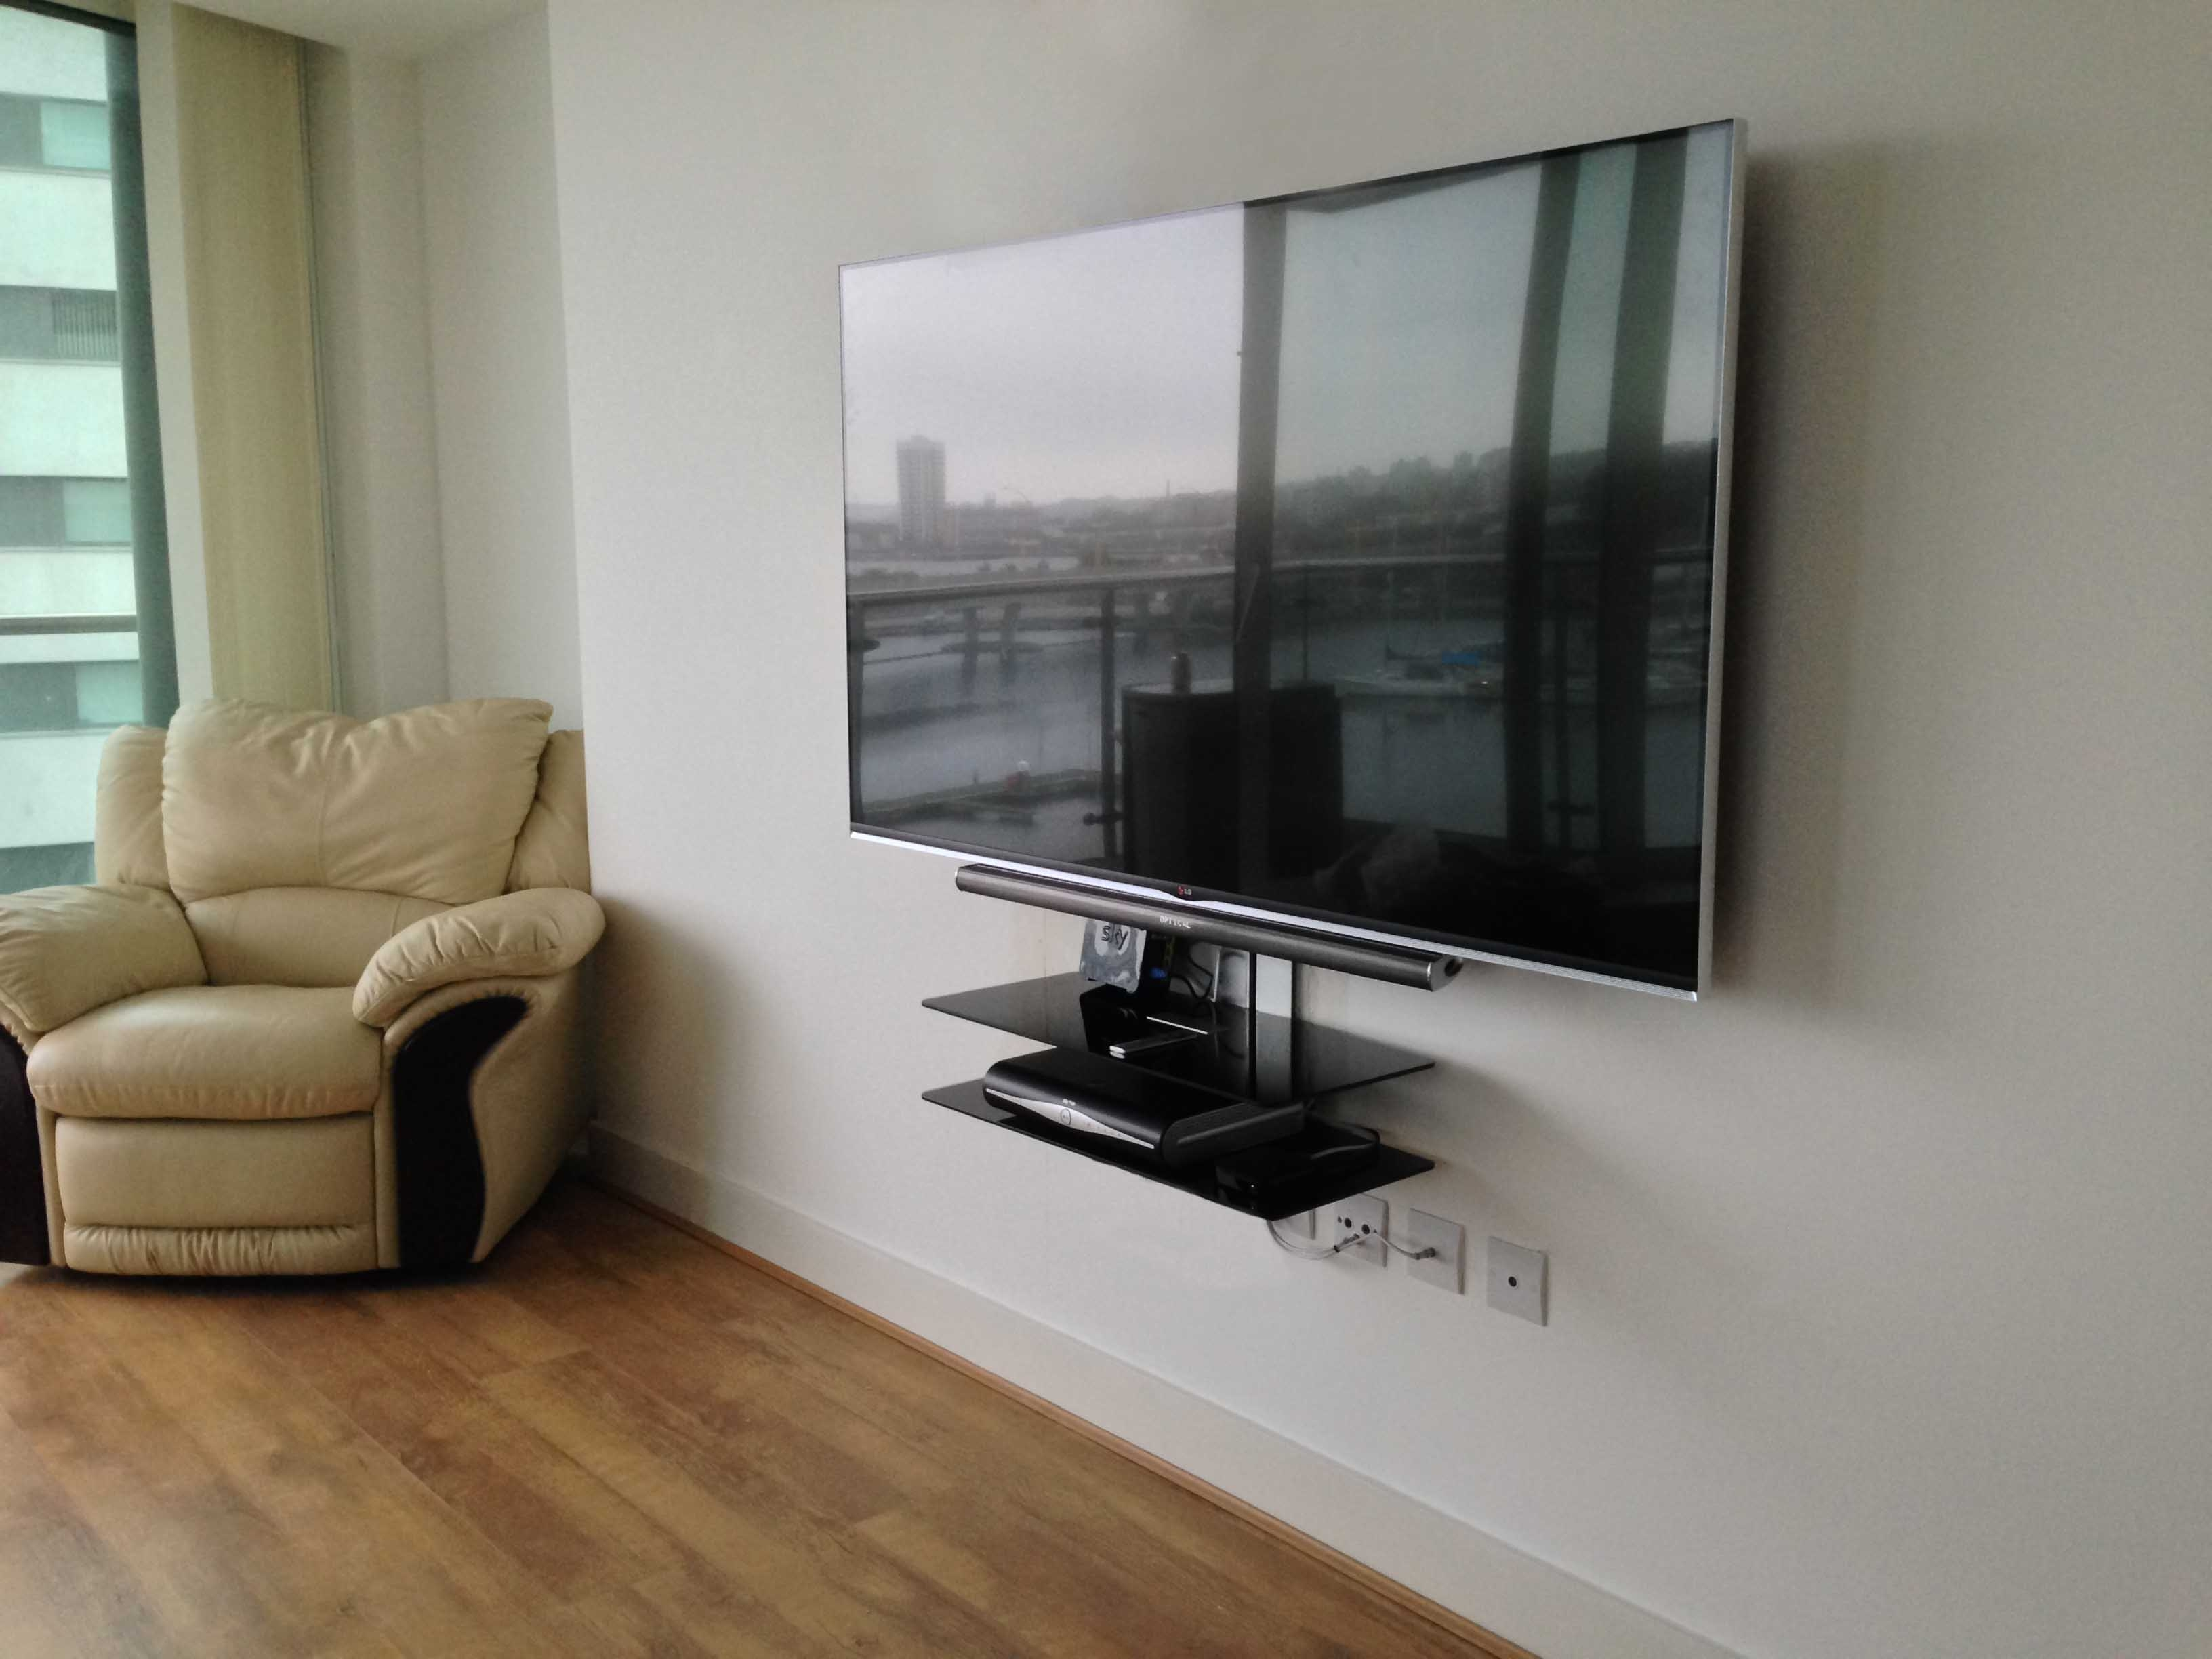 Tv Gallery Master Av Services Regarding Shelves On Plasterboard (View 11 of 15)